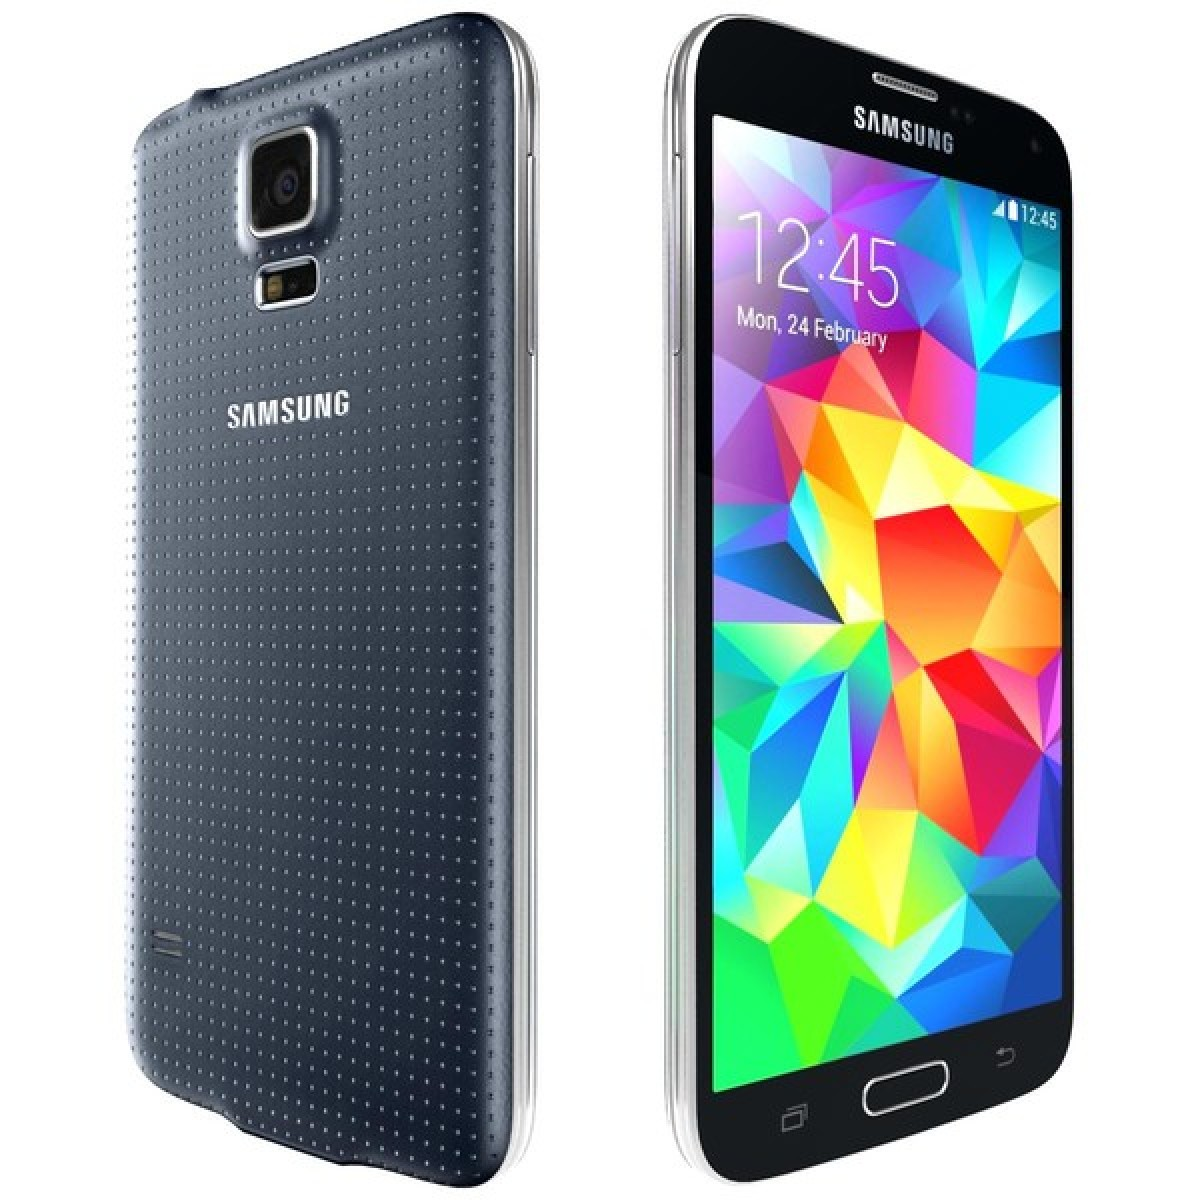 samsung galaxy s5 16gb sm g900p android smartphone for. Black Bedroom Furniture Sets. Home Design Ideas